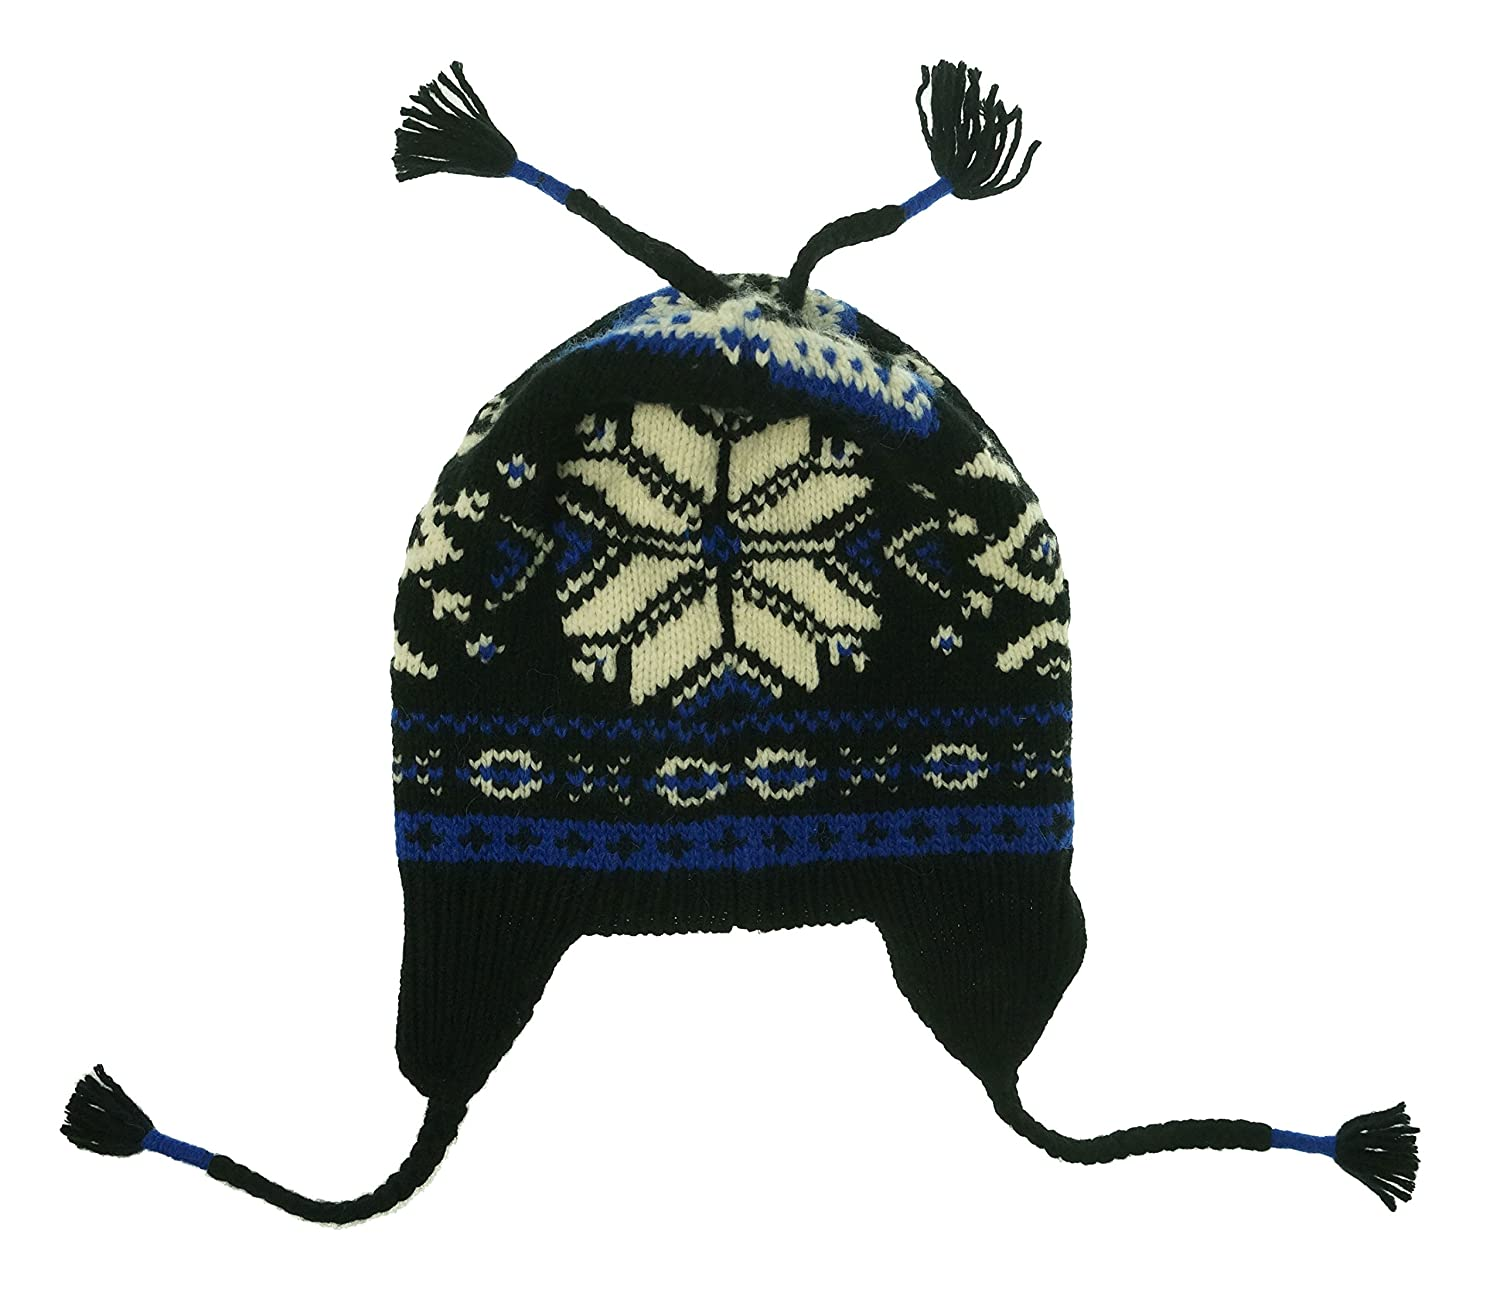 dfb54e76c55 Polo Ralph Lauren Mens Wool Fair Isle Winter Hat Black O S at Amazon Men s  Clothing store